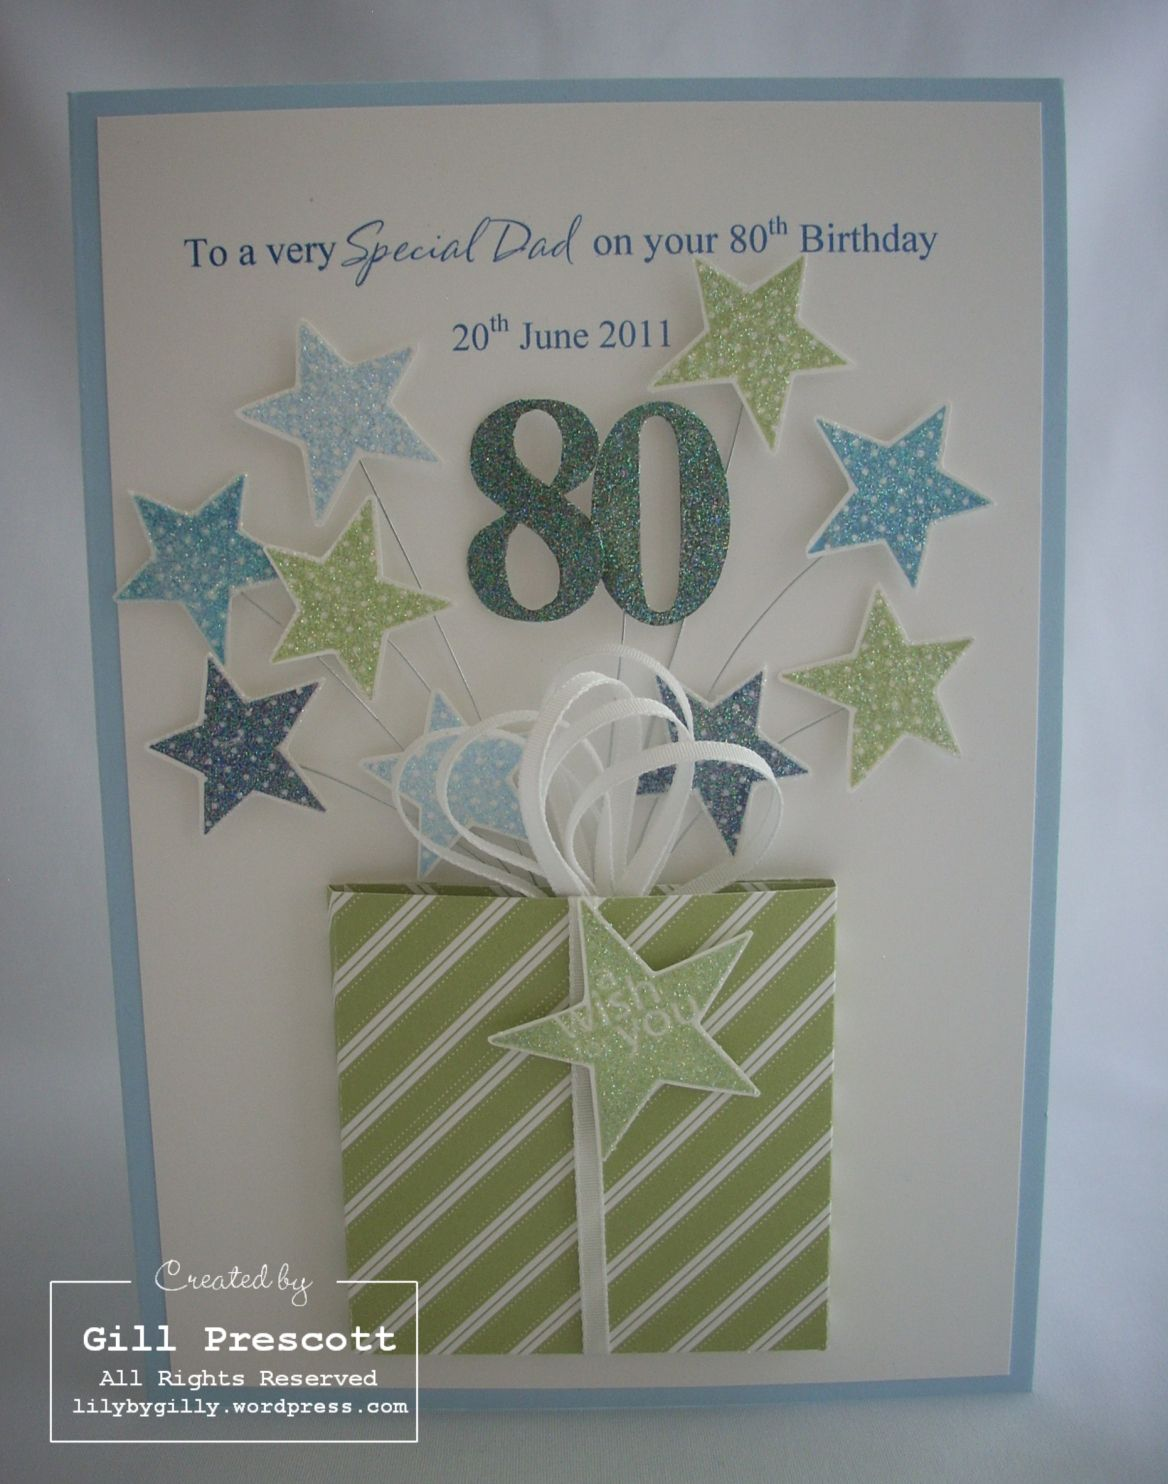 Youure a staru birthday cards pinterest cards card ideas and